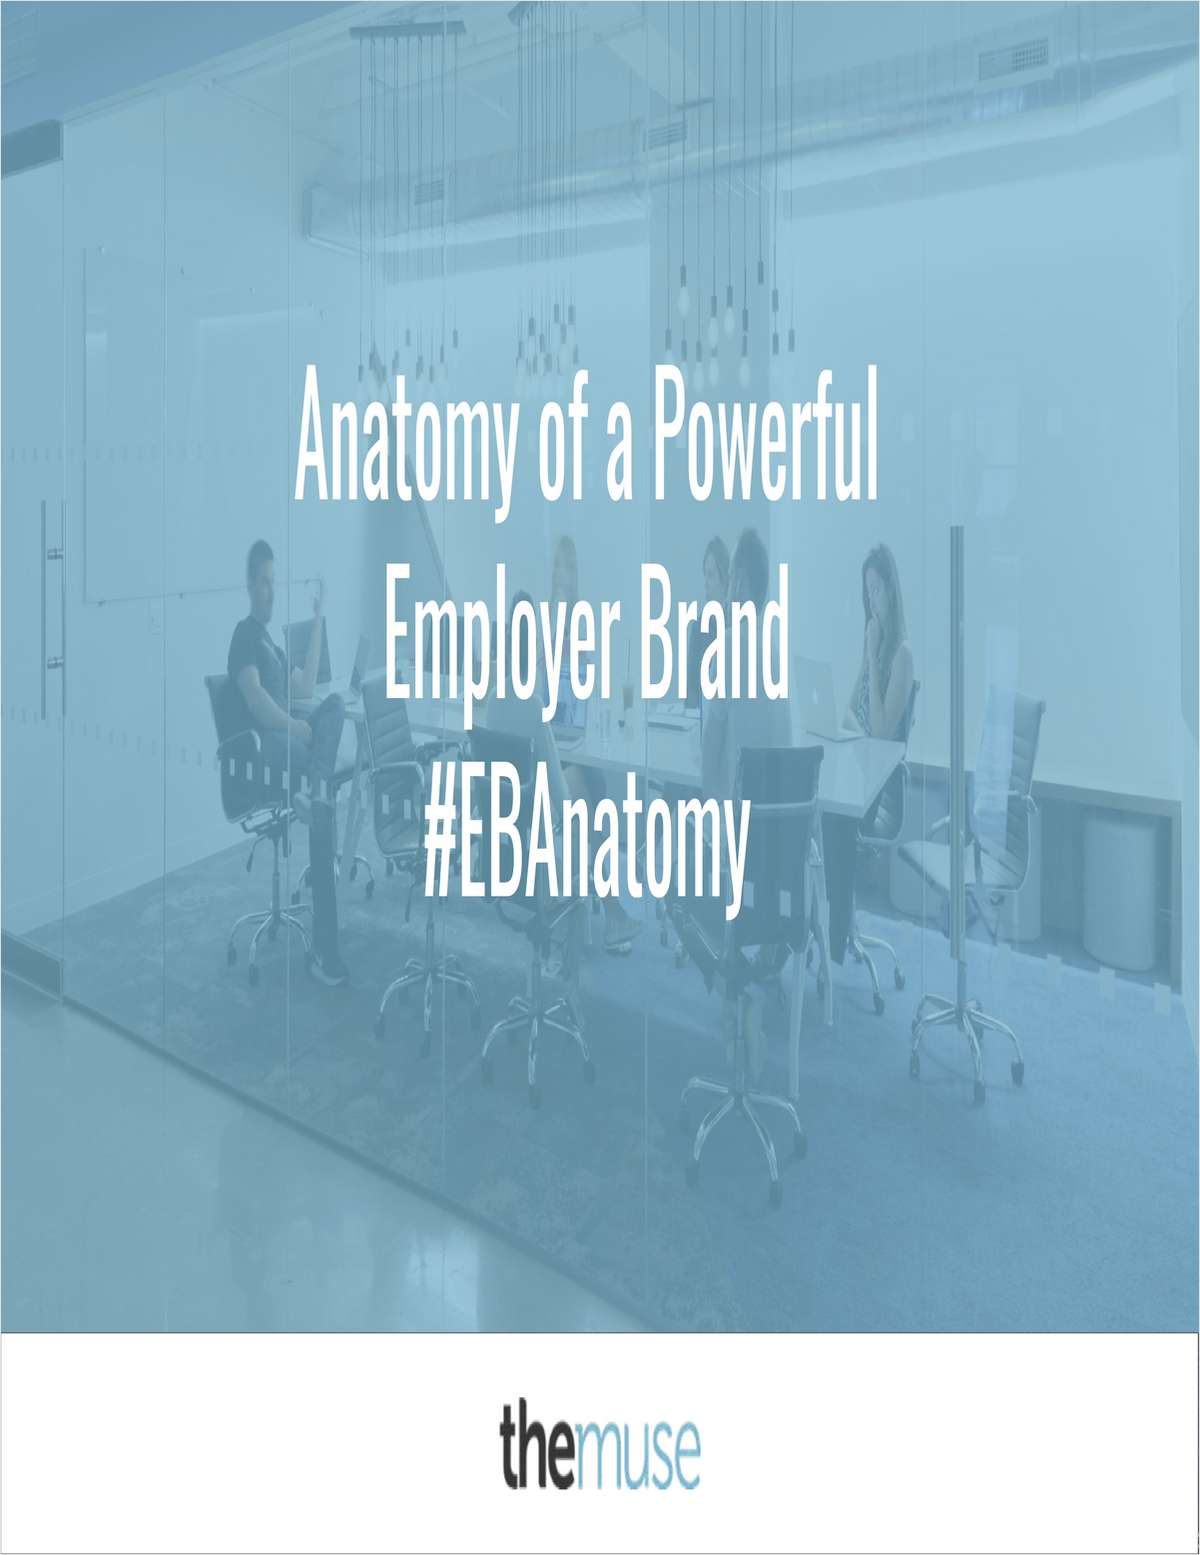 Anatomy of a Powerful Employer Brand